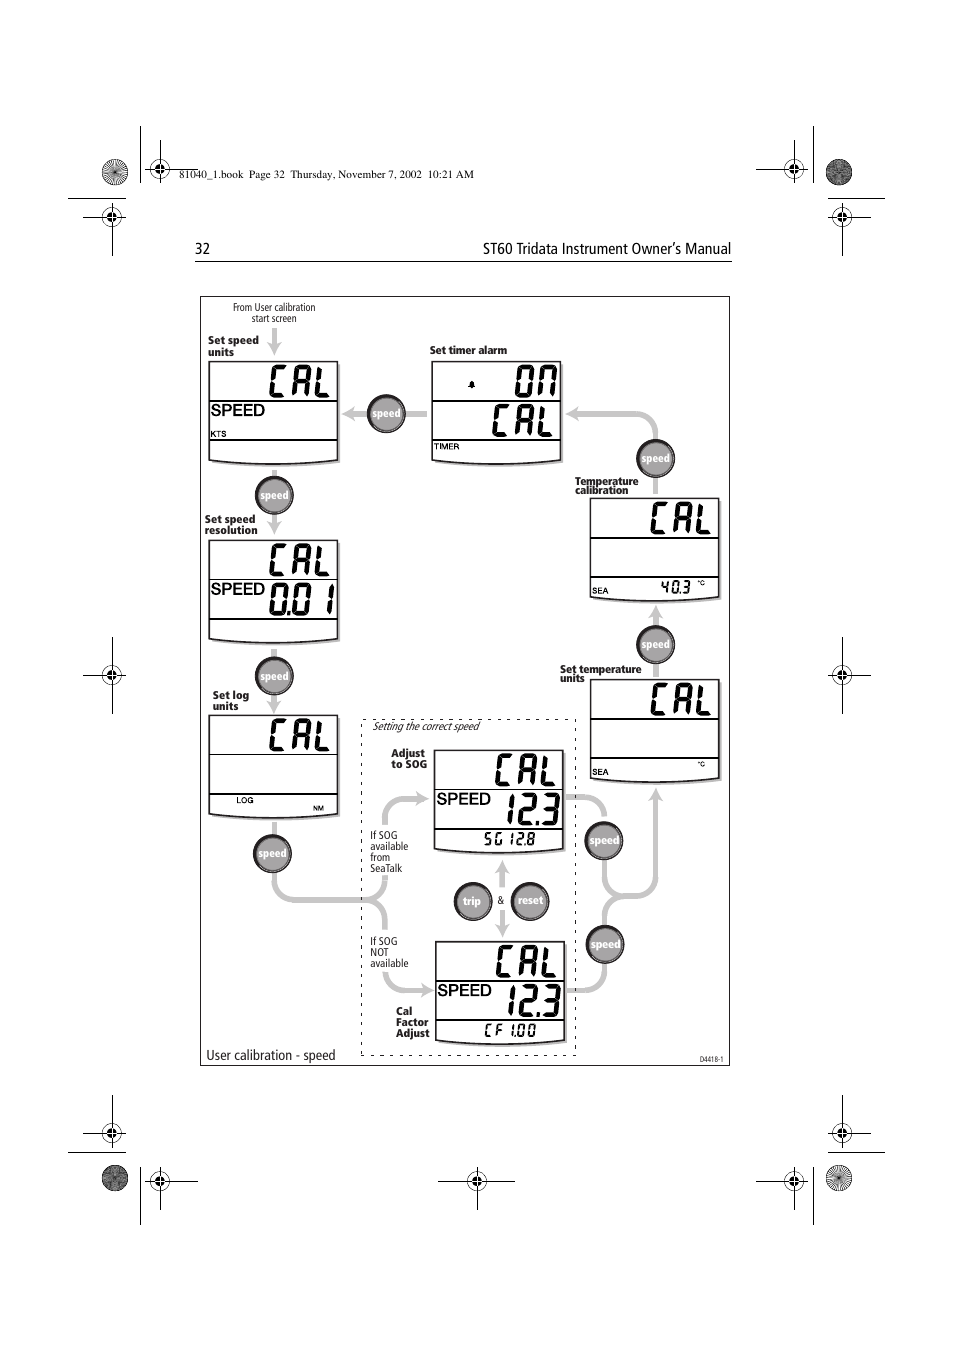 Raymarine St60 Tridata Wiring Diagram Explained Diagrams Seatalk 32 Instrument Owners Manual